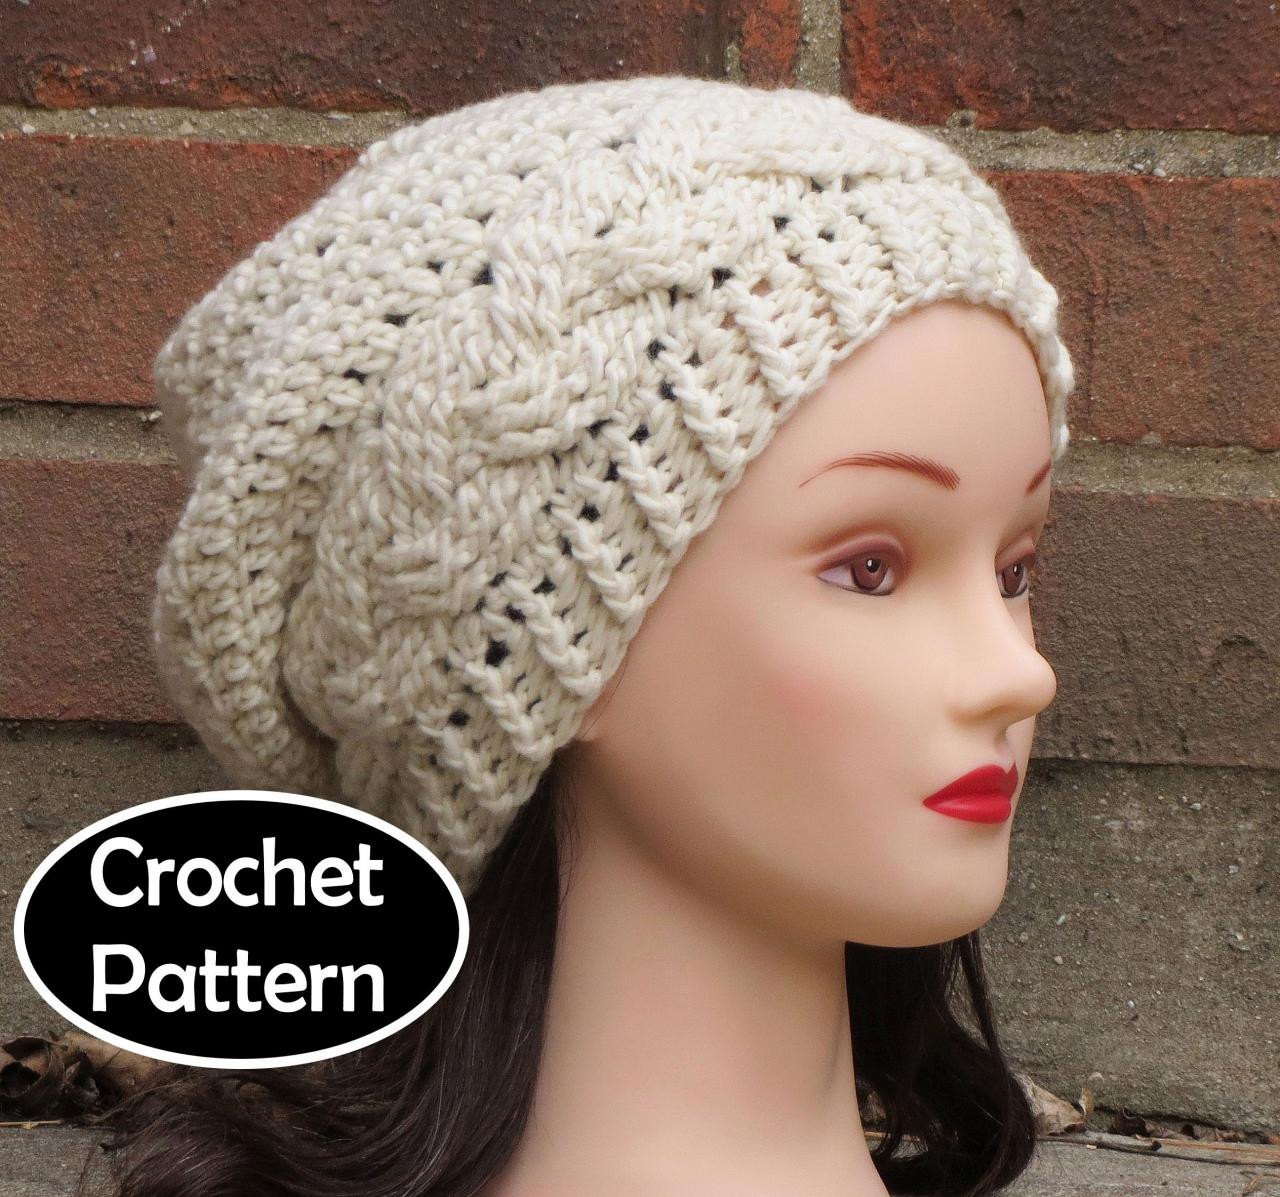 Womens Crochet Hat Patterns New Womens Slouchy Beanie Crochet Pattern Of Luxury 50 Photos Womens Crochet Hat Patterns